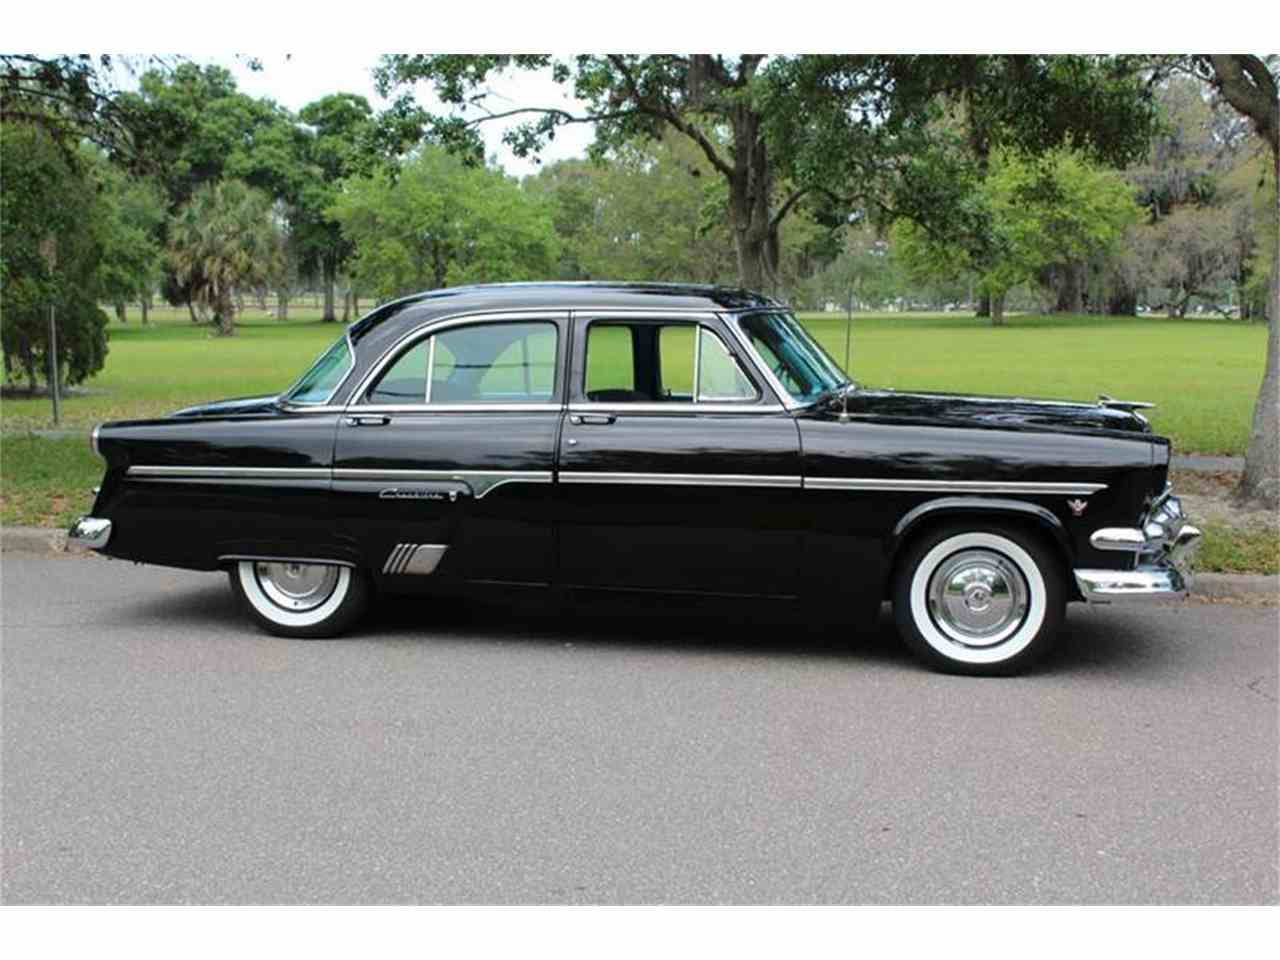 Trucks Under 5000 >> 1954 Ford Crestline for Sale | ClassicCars.com | CC-822110